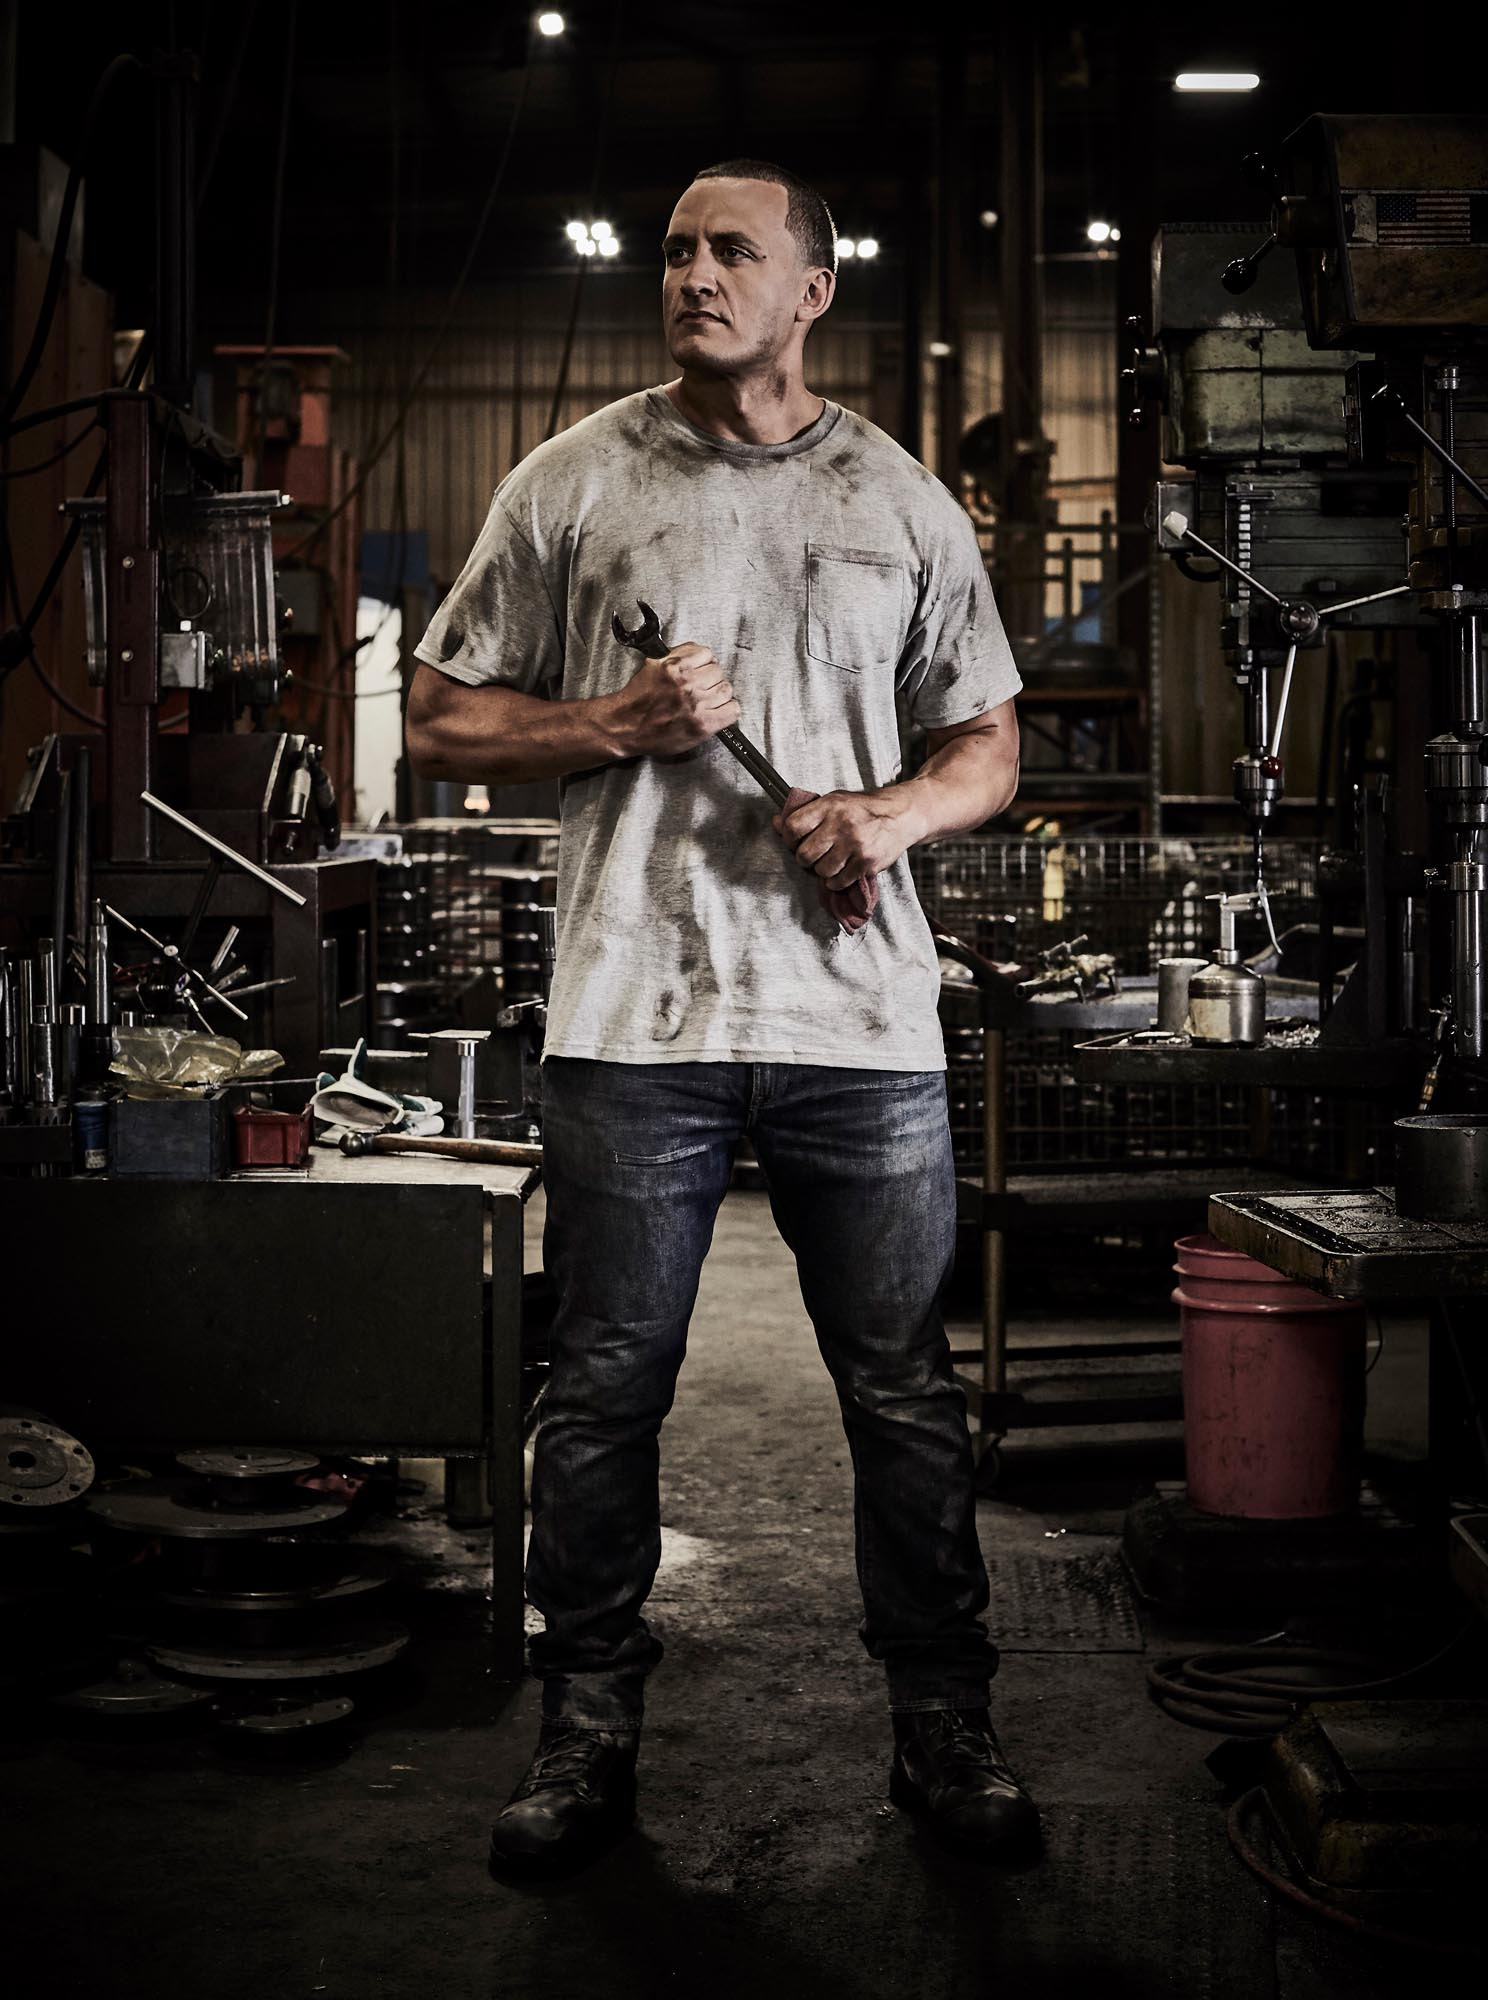 A model holding a wrench in an industrial environment